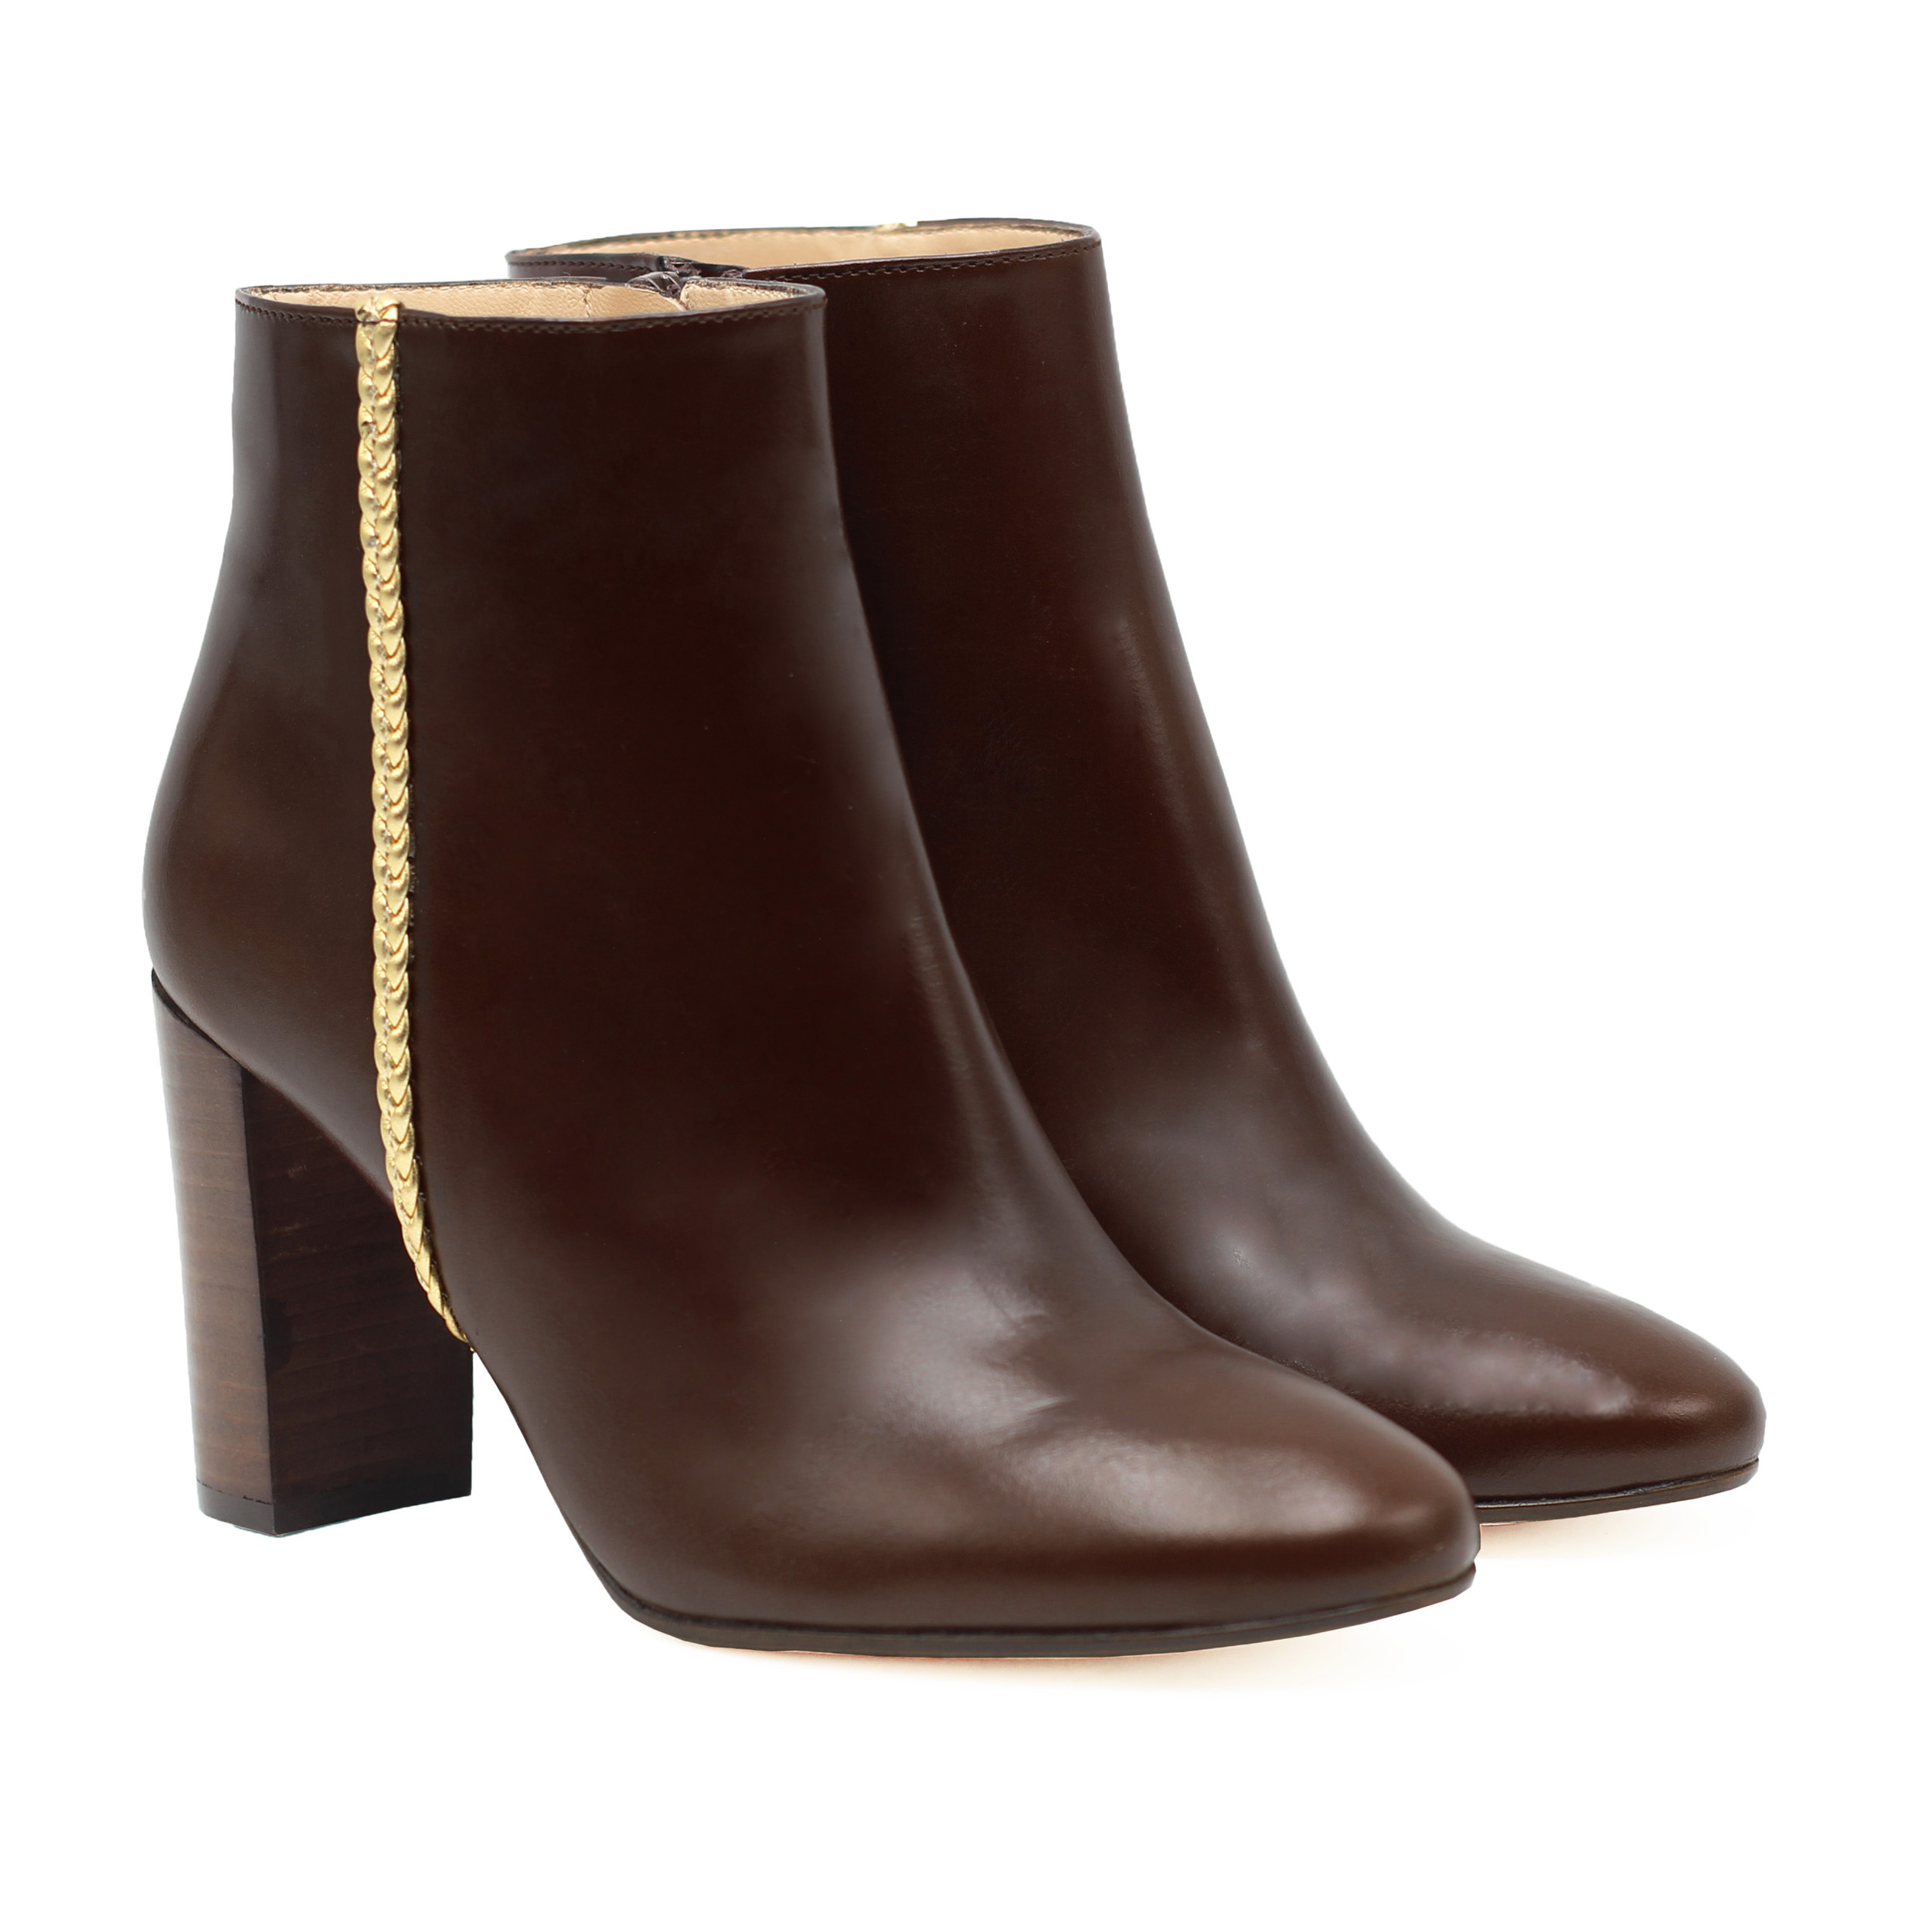 Bottines à talon cuir marron